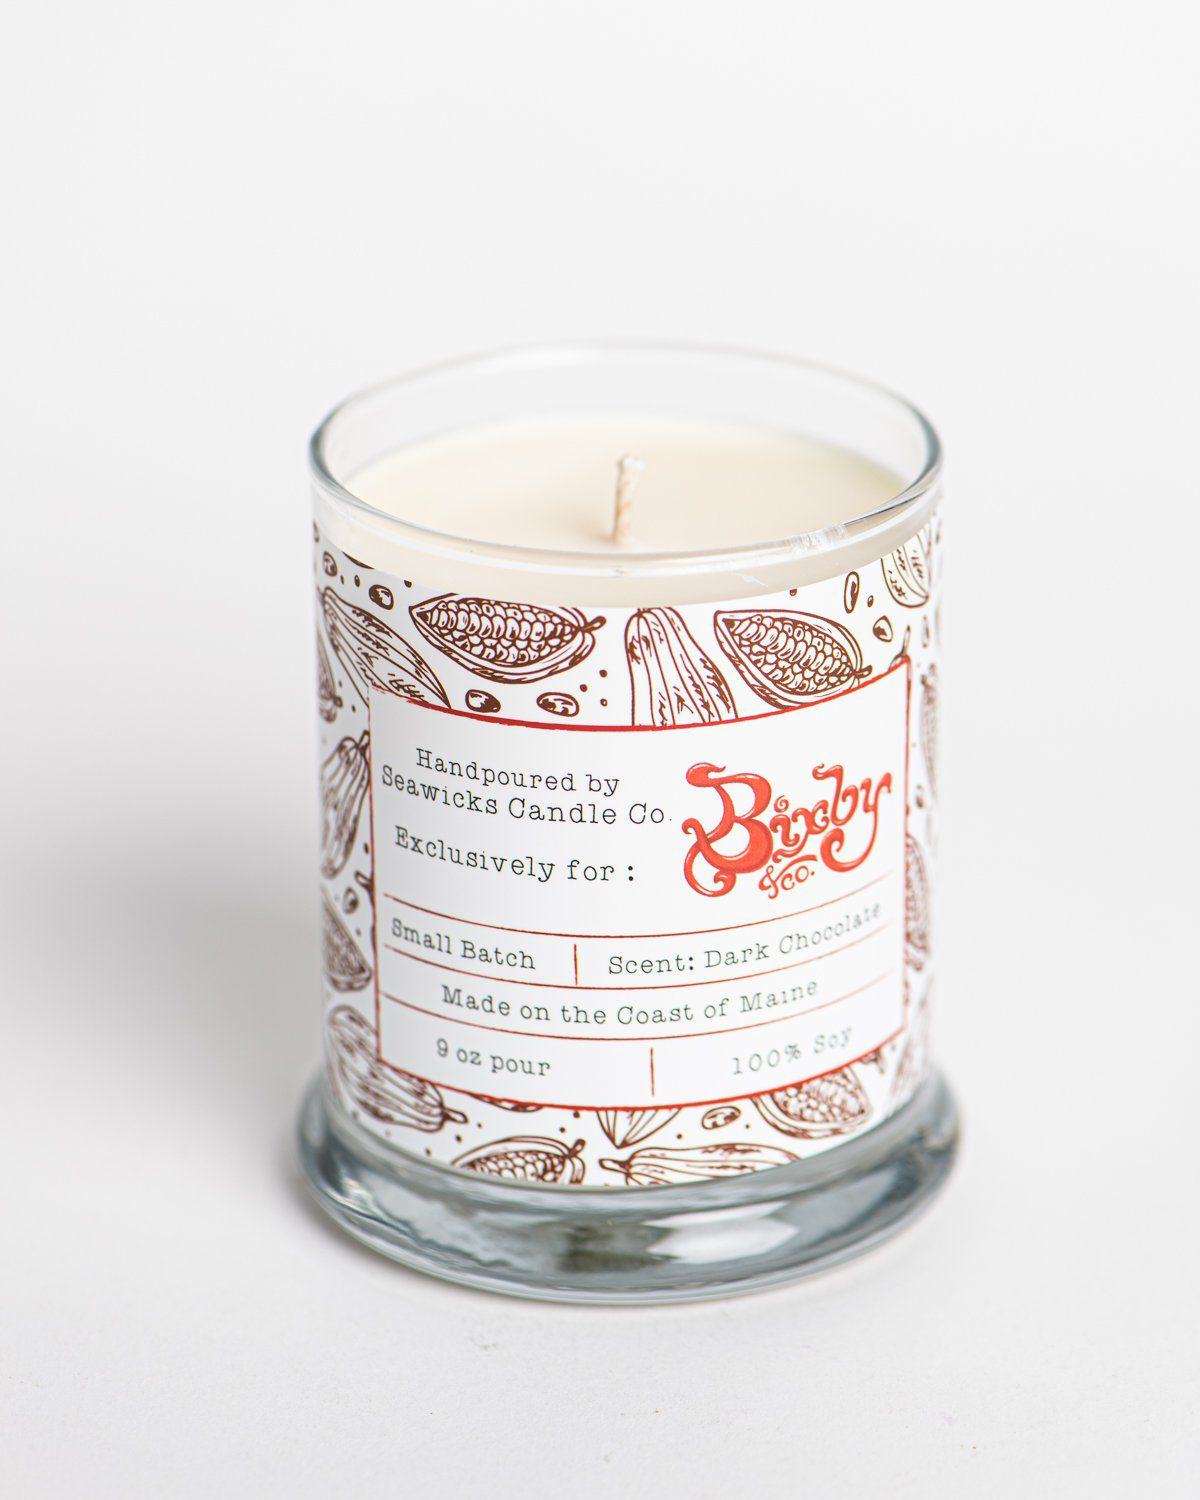 Bixby & Co. Dark Chocolate Scented Candle